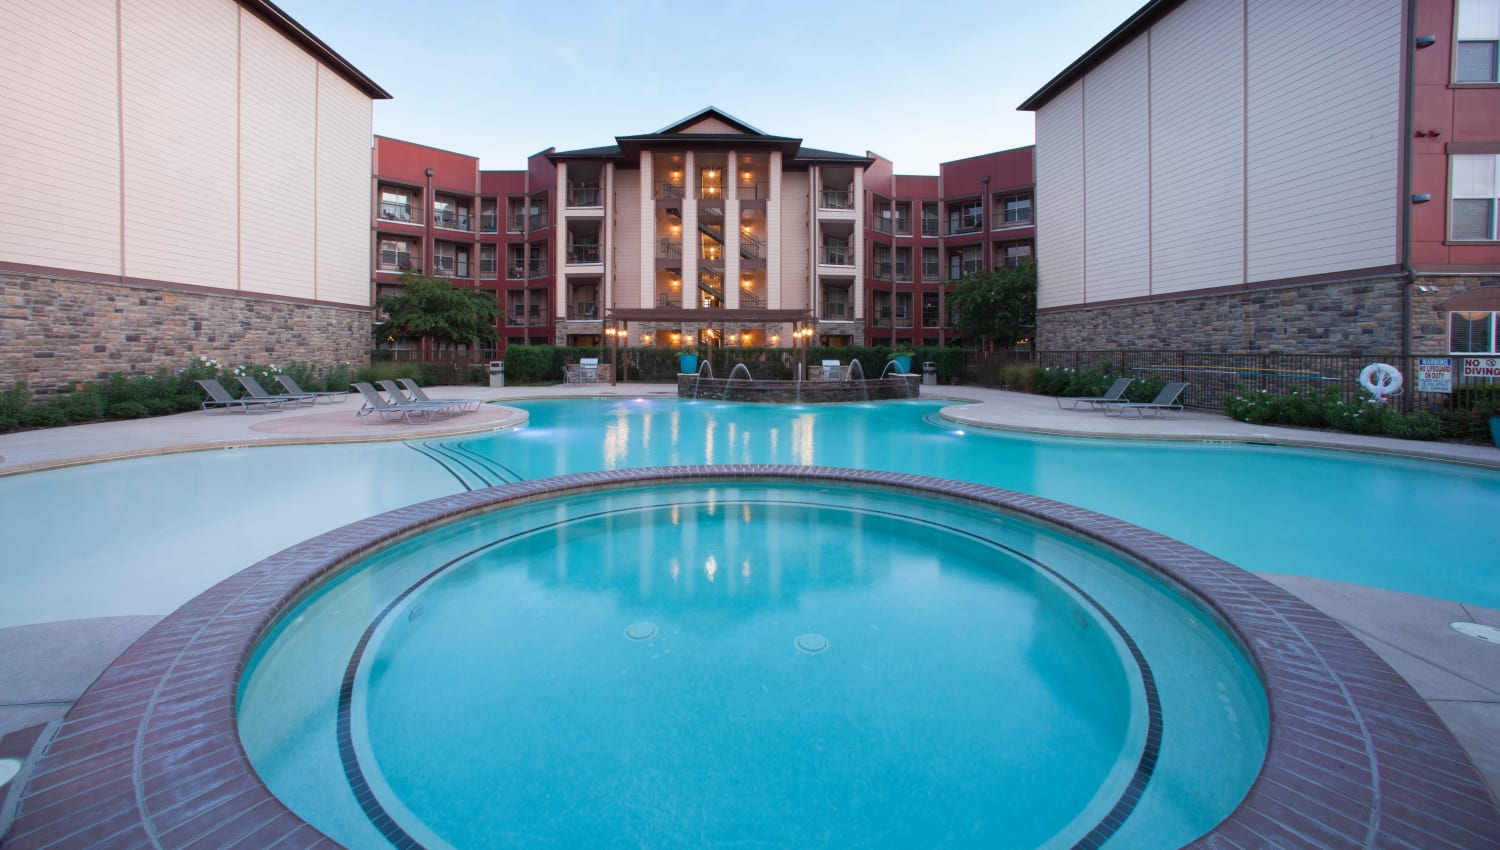 Dusk at the spa and pool area at Olympus Katy Ranch in Katy, Texas